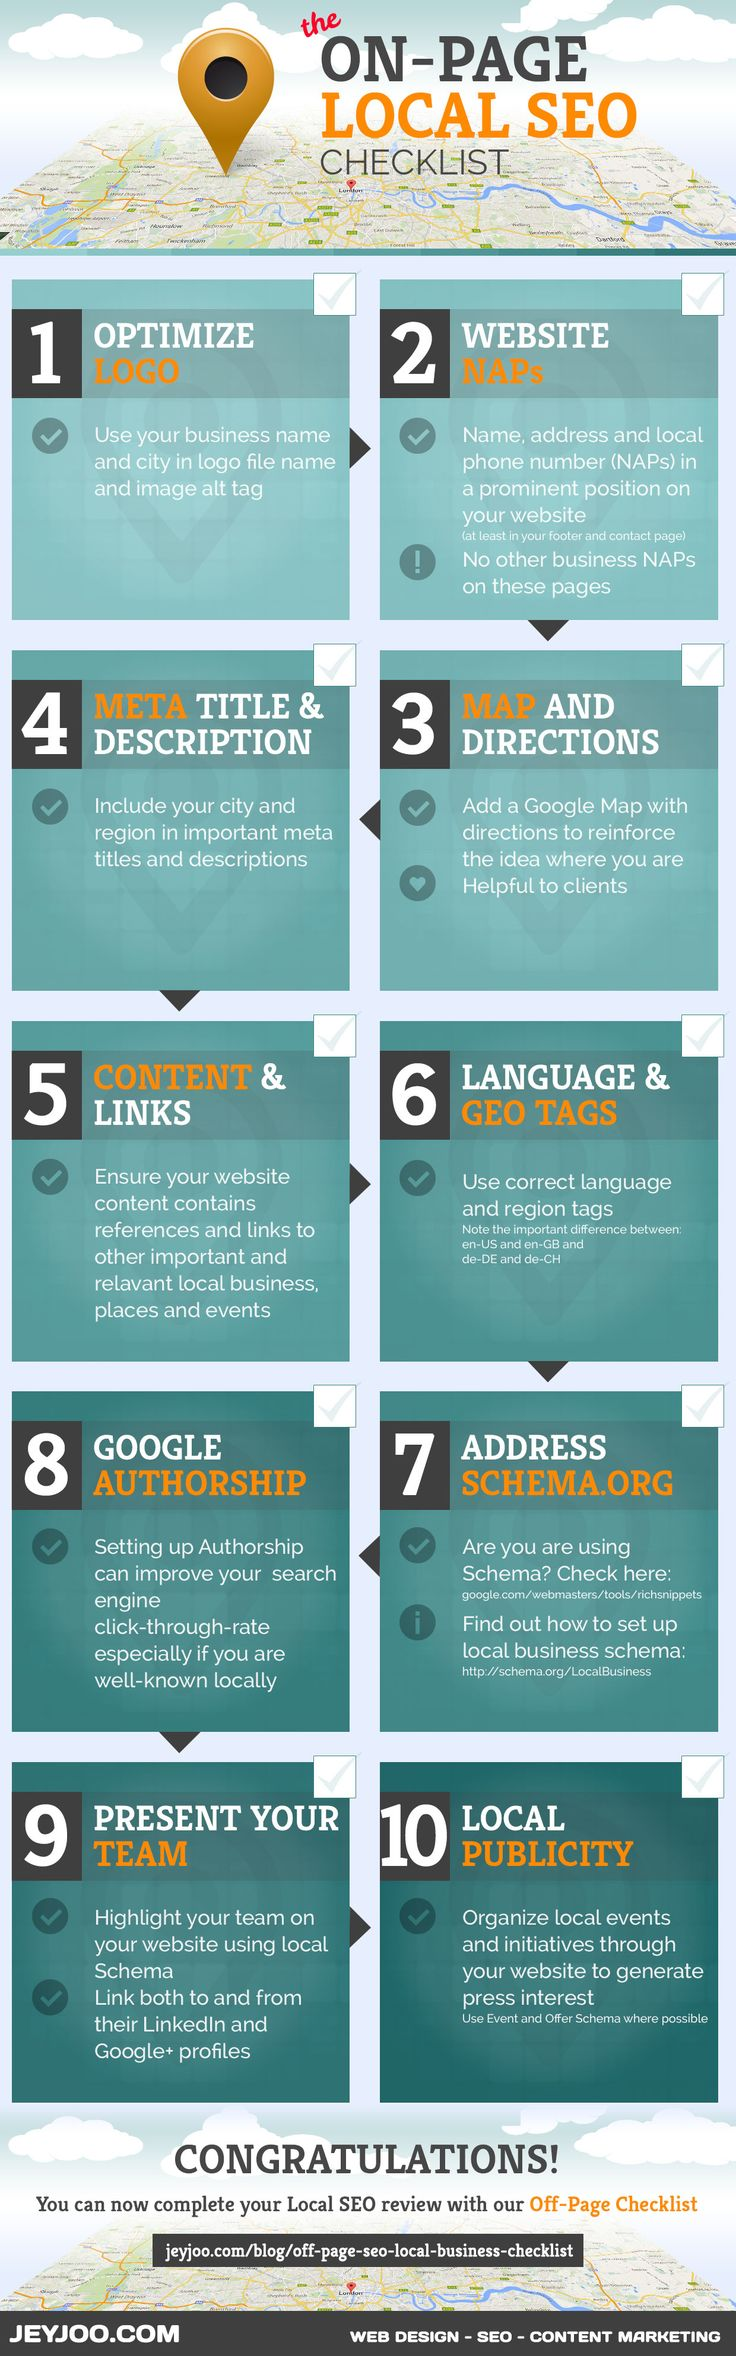 On-Page Local SEO: 10 Tips To Improve Your Local SEO  80706b2269fa138c75b6ed63635e3132